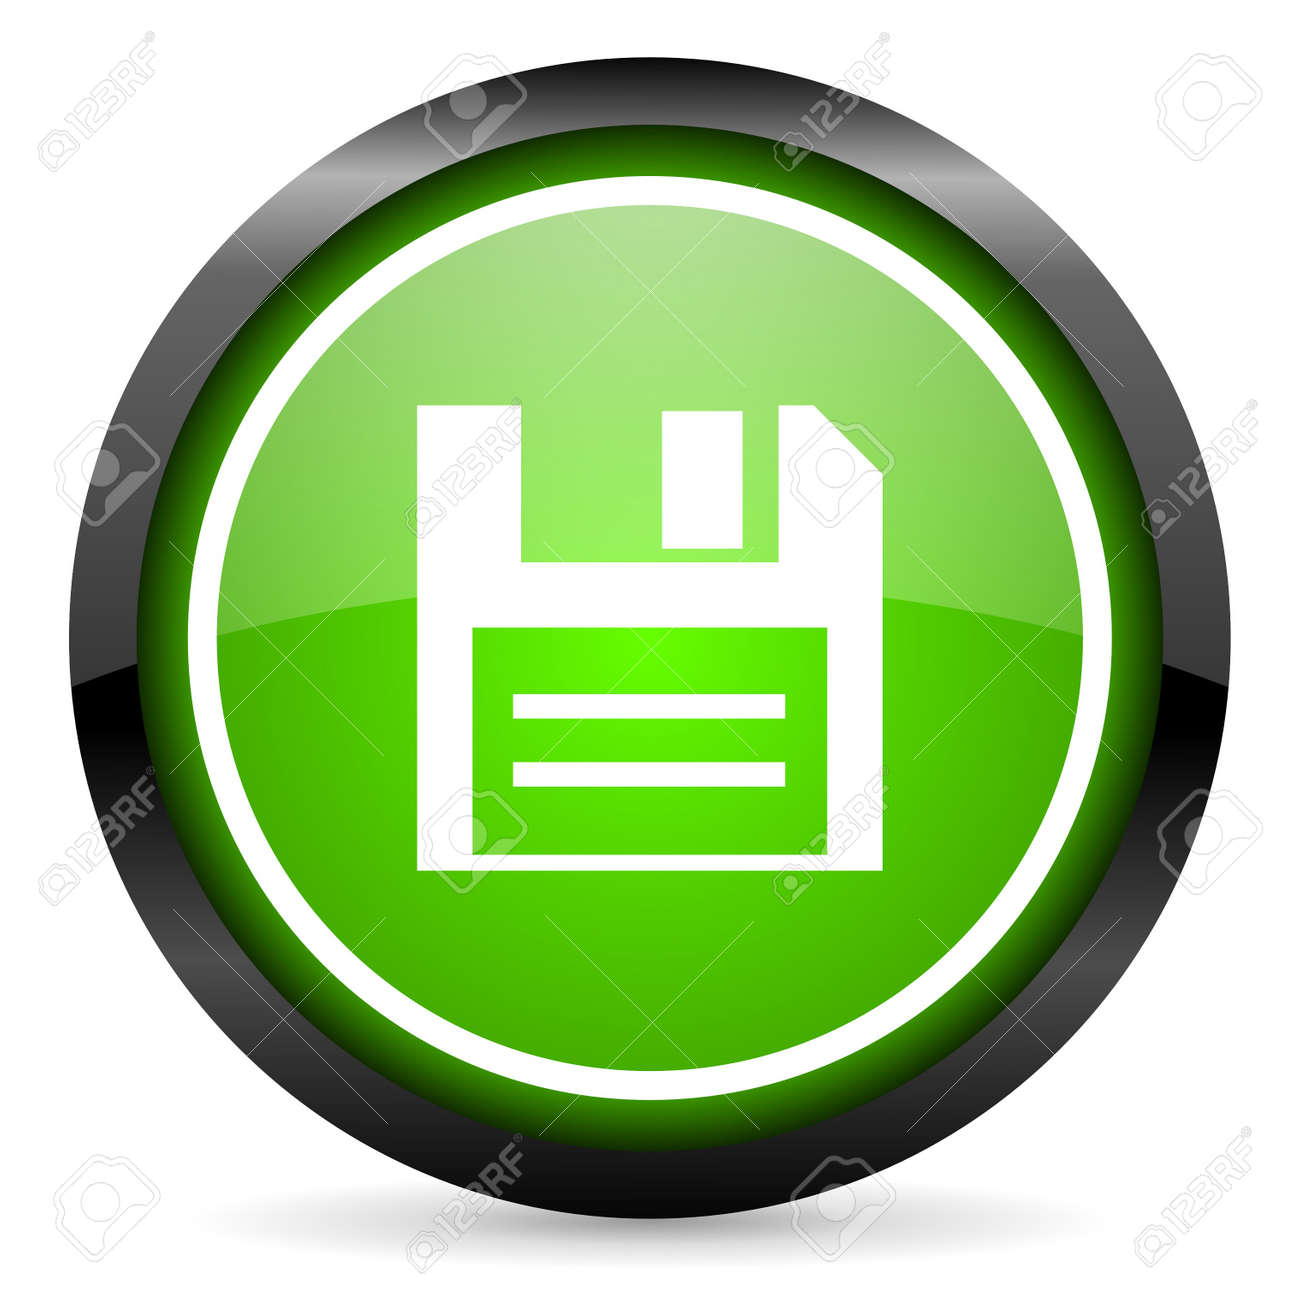 disk green glossy icon on white background Stock Photo - 16736781